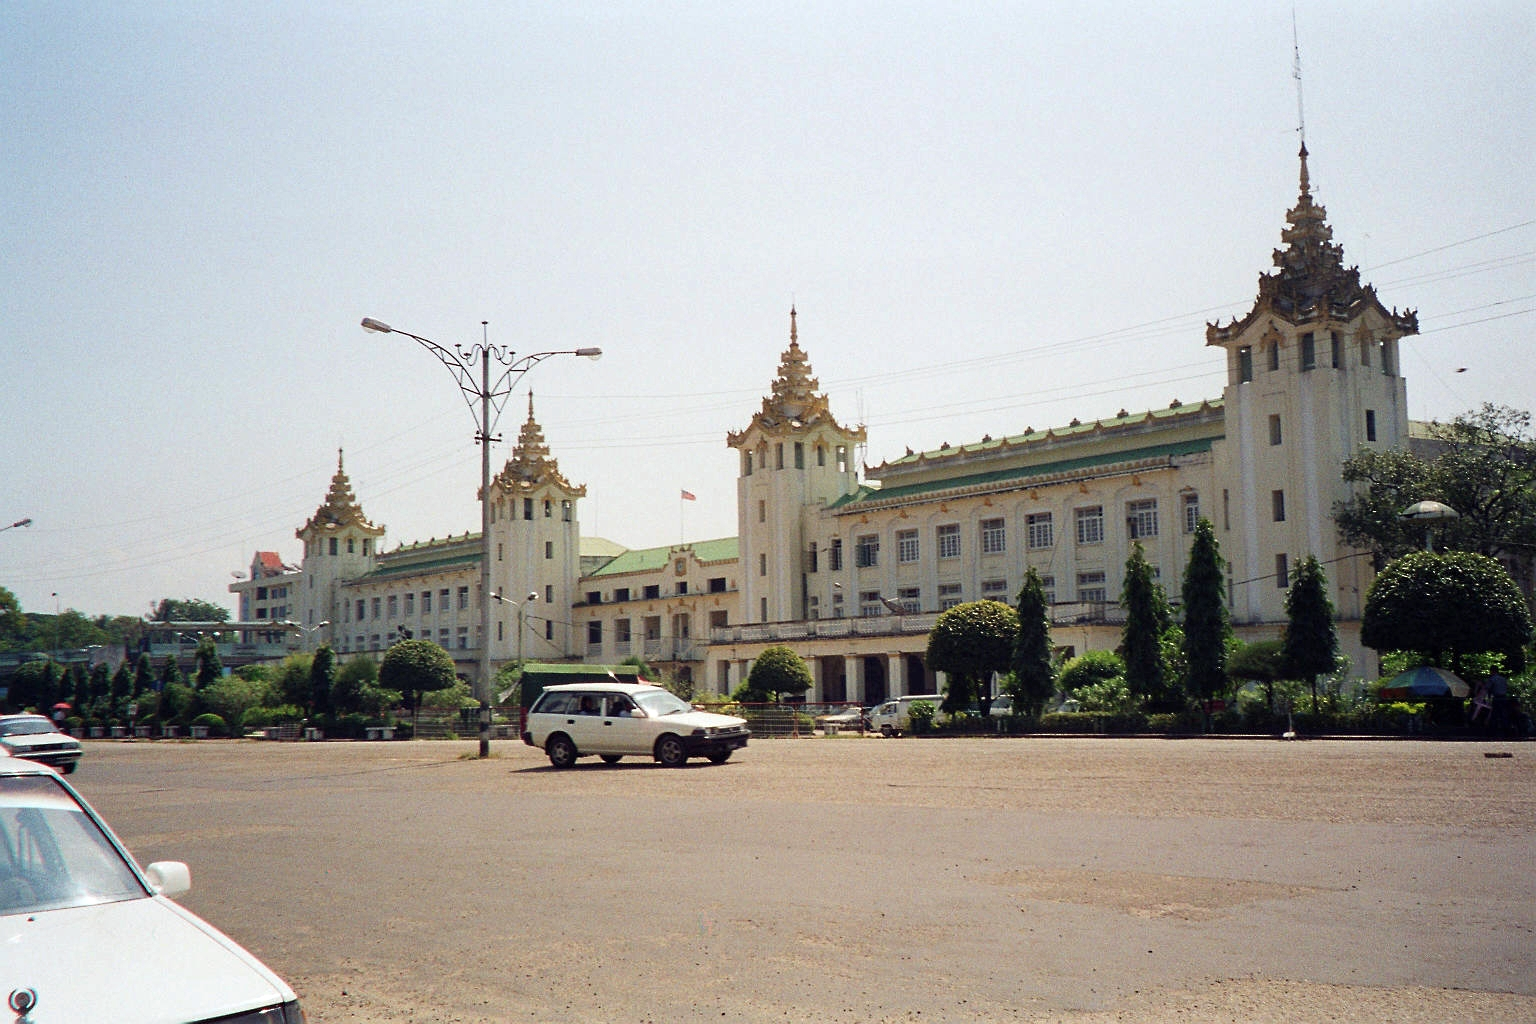 Yangon Myanmar  City pictures : Original file ‎ 1,536 × 1,024 pixels, file size: 896 KB, MIME type ...